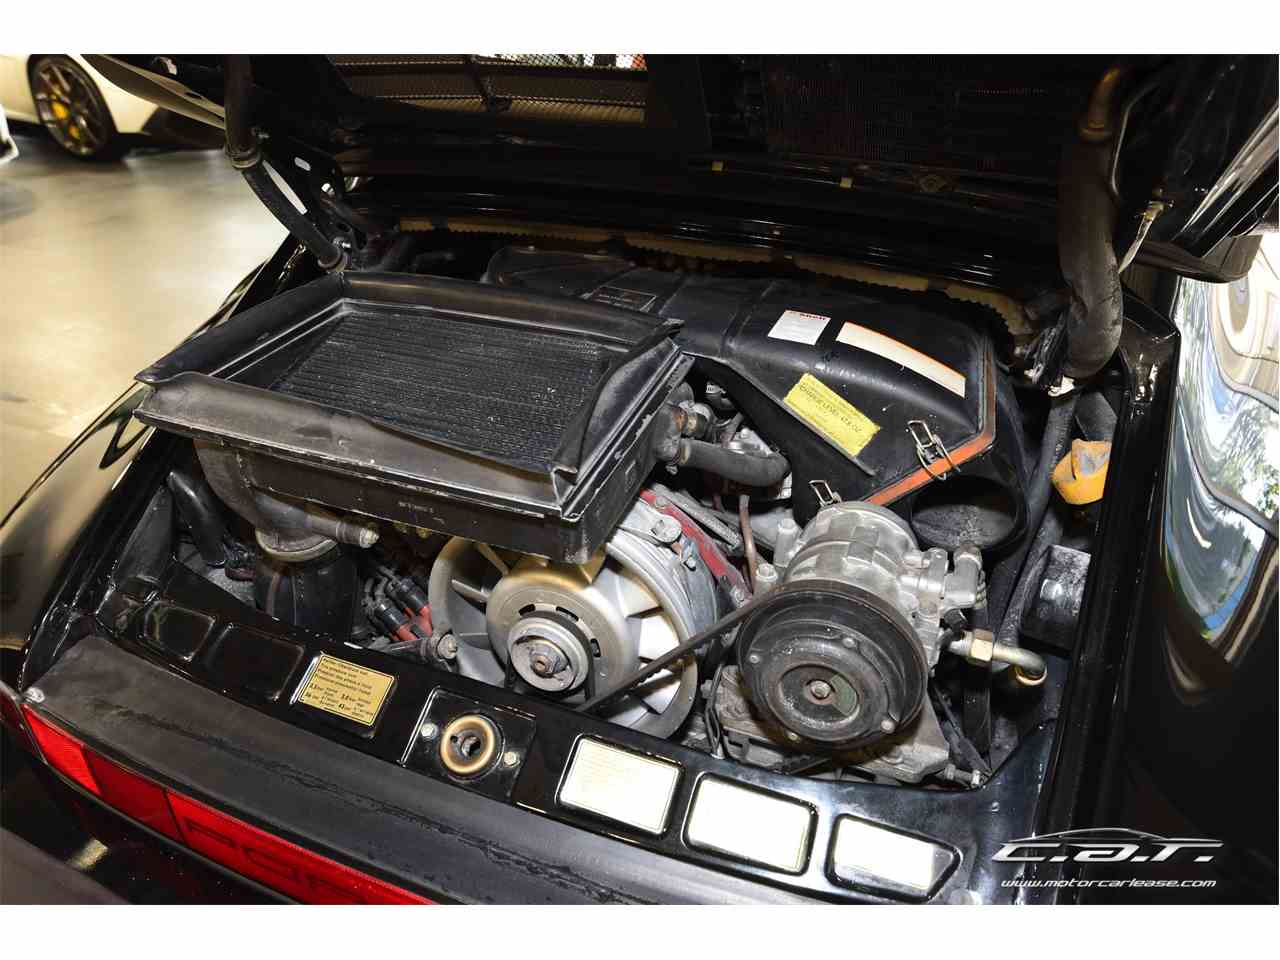 Large Picture of '87 Porsche 930 Turbo located in Montreal Quebec - $189,000.00 - J8YA